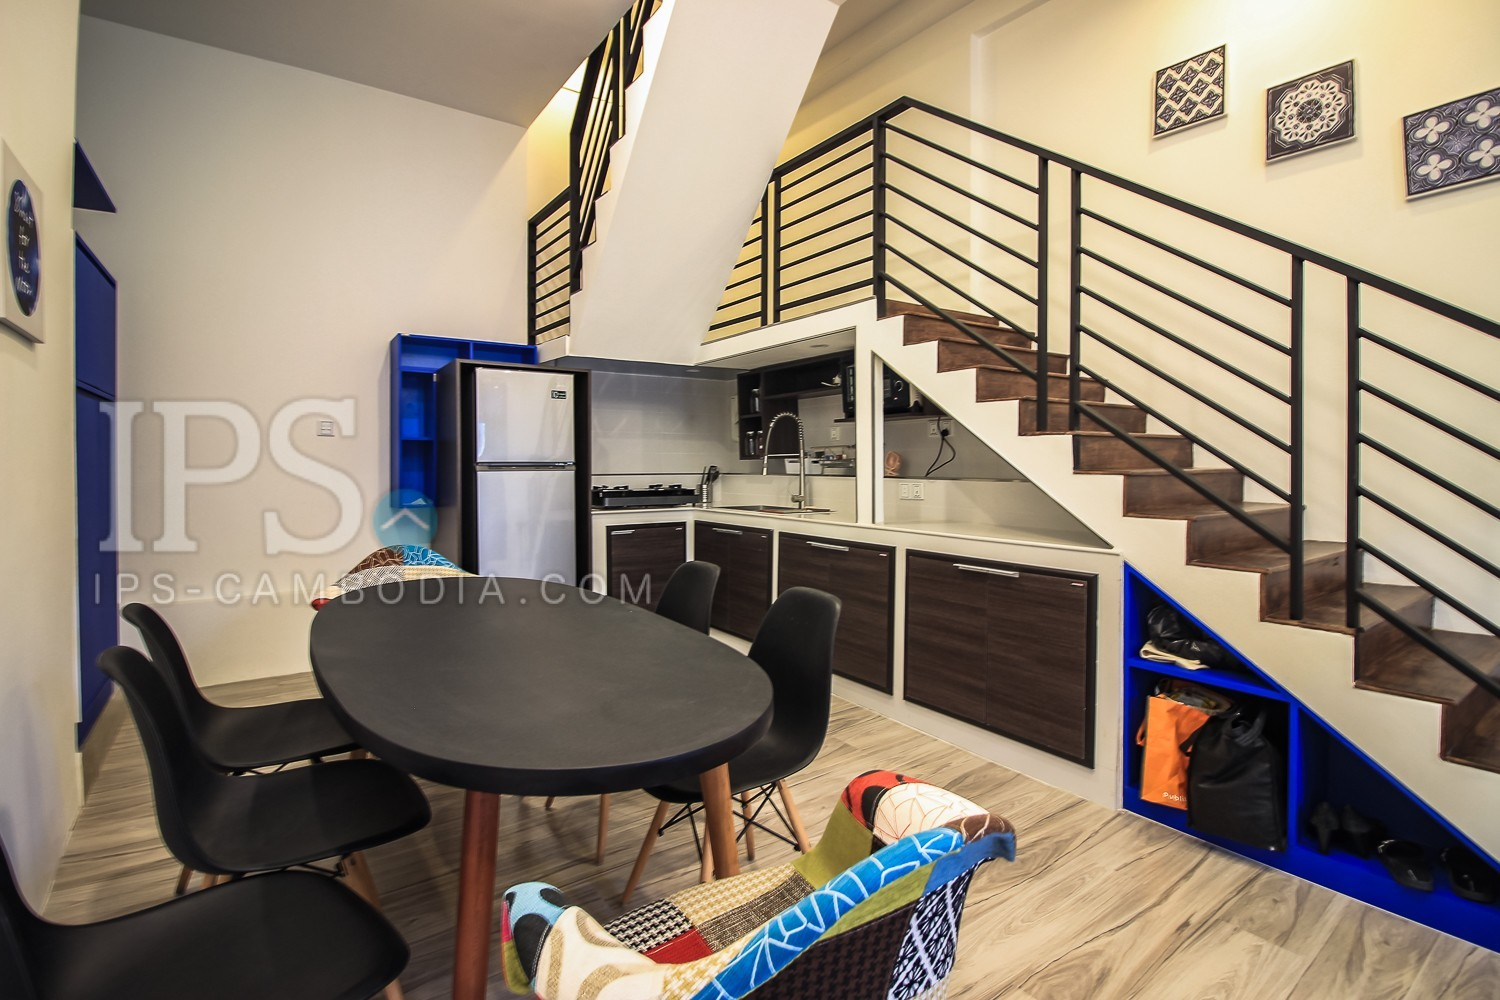 2 Bedroom Duplex Apartment For Rent - Near Post Office, Phnom Penh